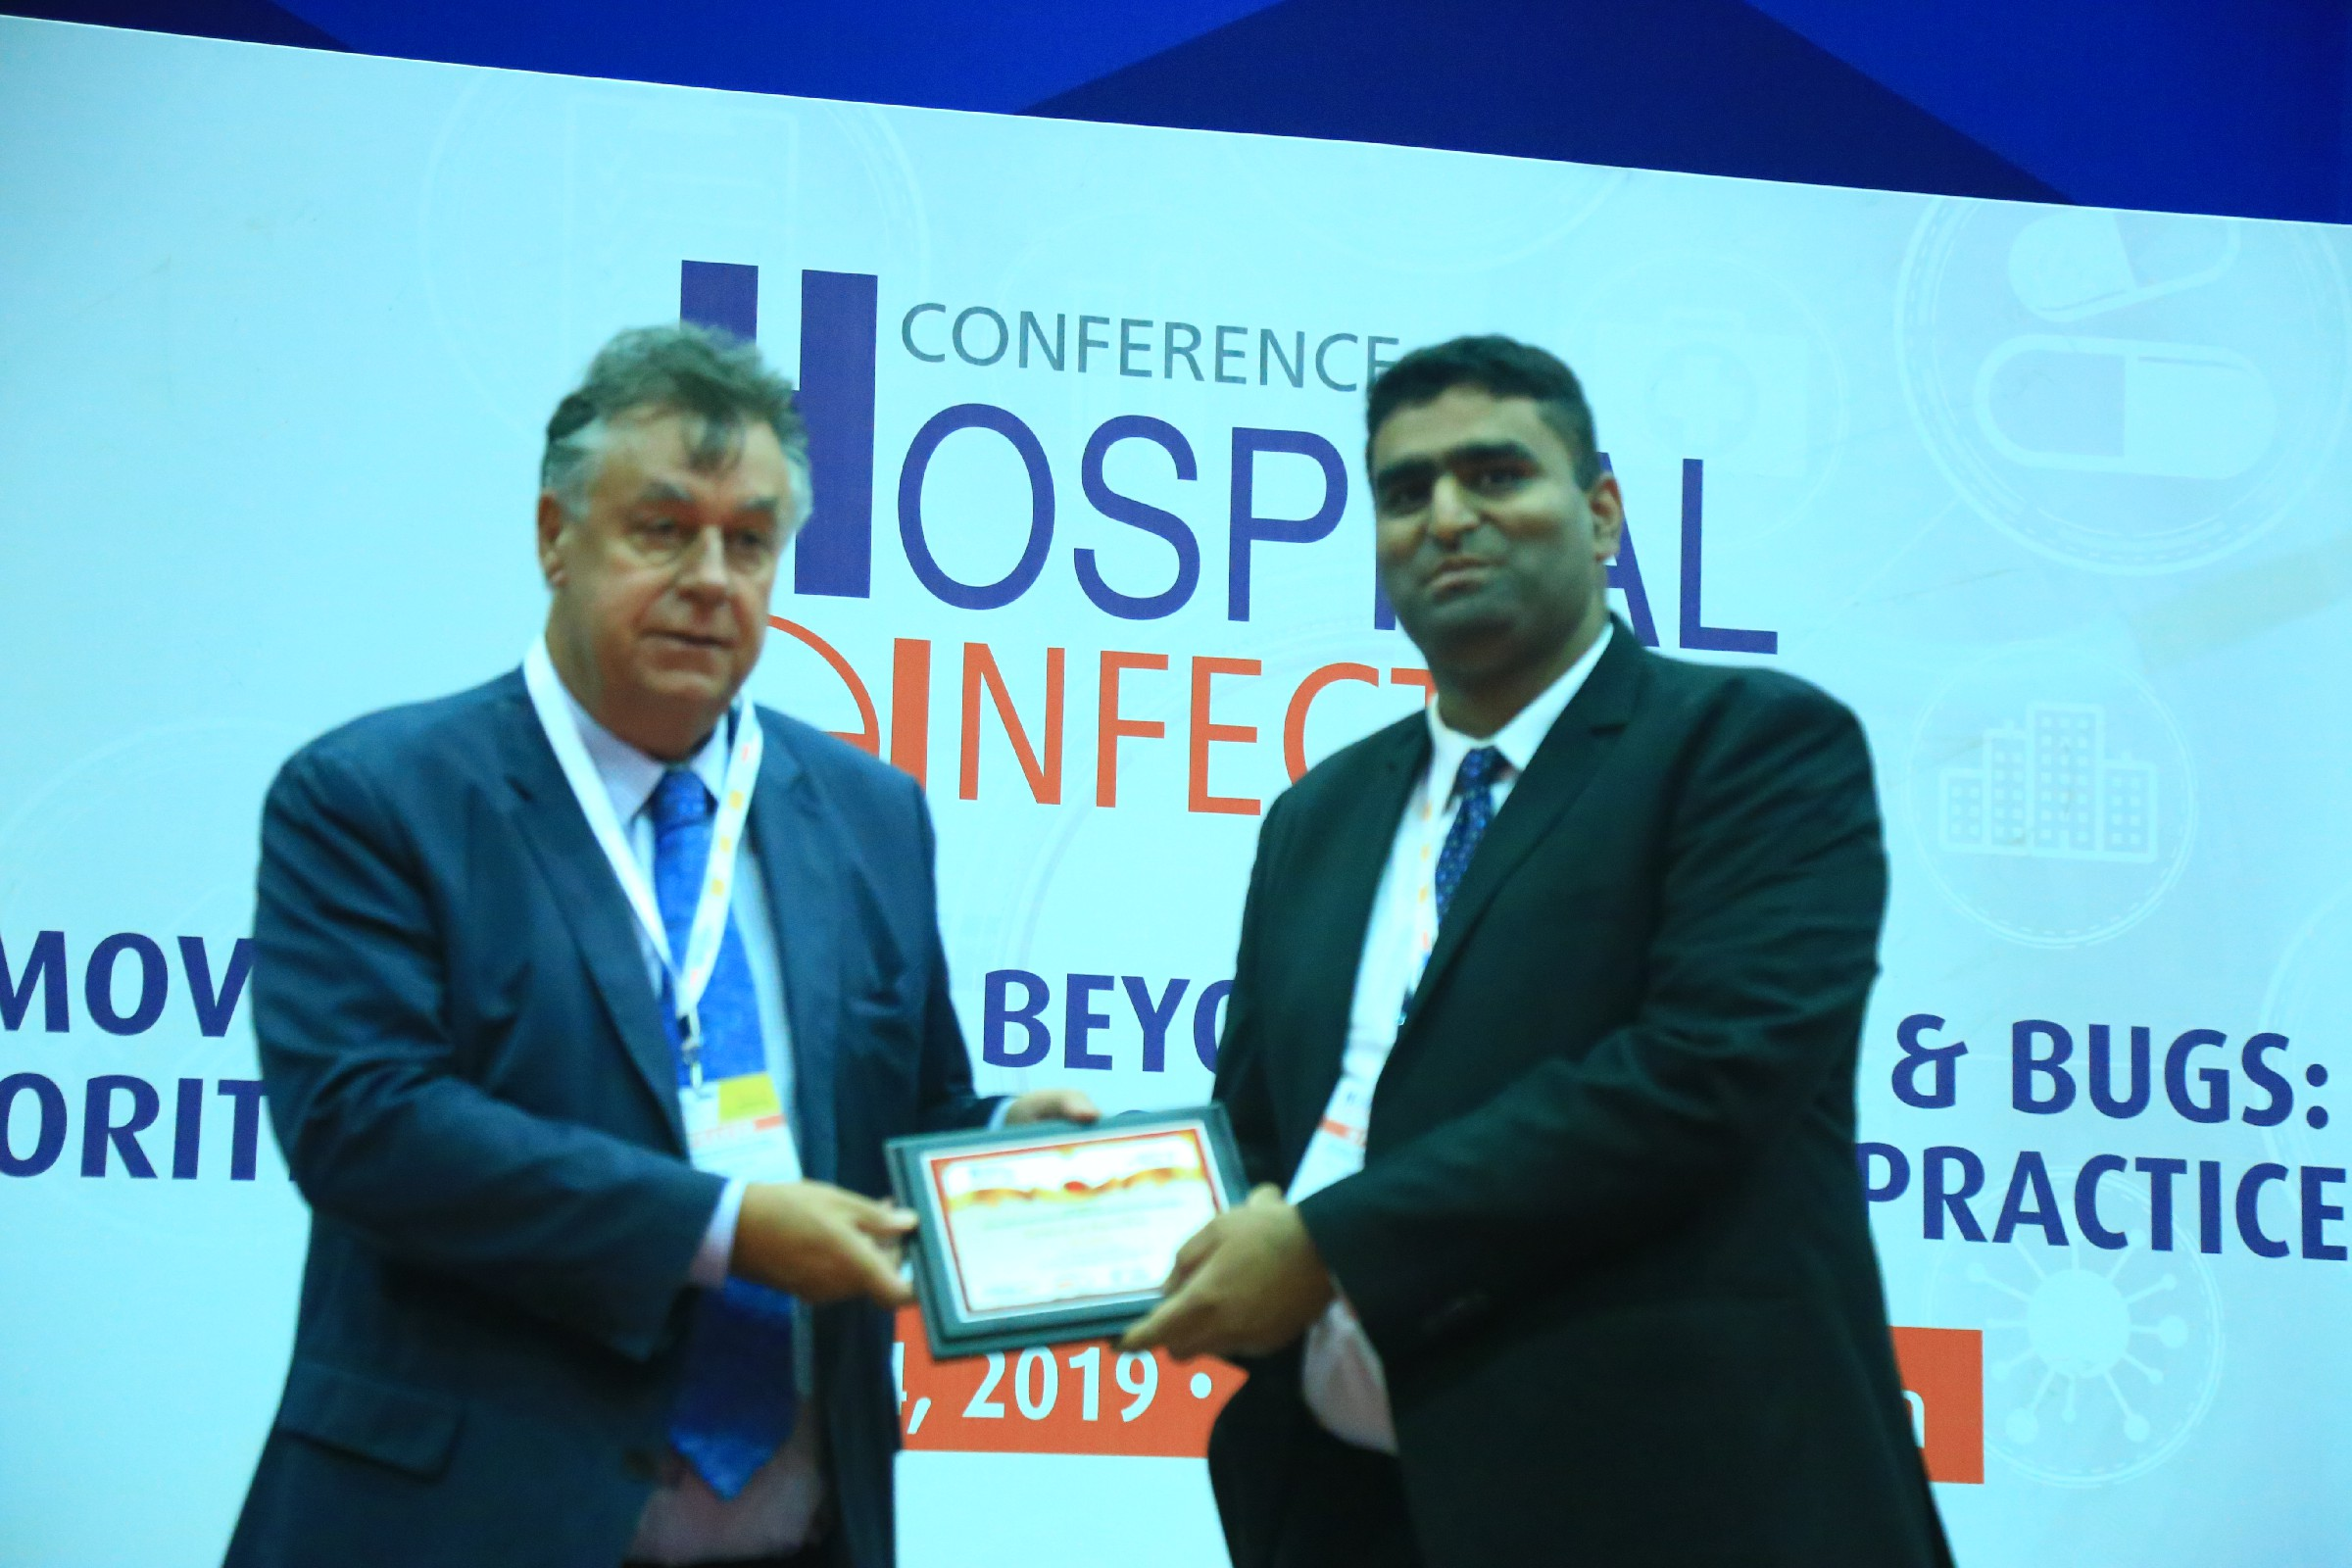 Paul-Hyslop-Group-MD-CEO-Zoono-Group-of-Companies-Dr-Dhruv-K-Mamtora-Consultant-Clinical-Microbiologist-and-Infection-Control-officer-S.-L.-Raheja